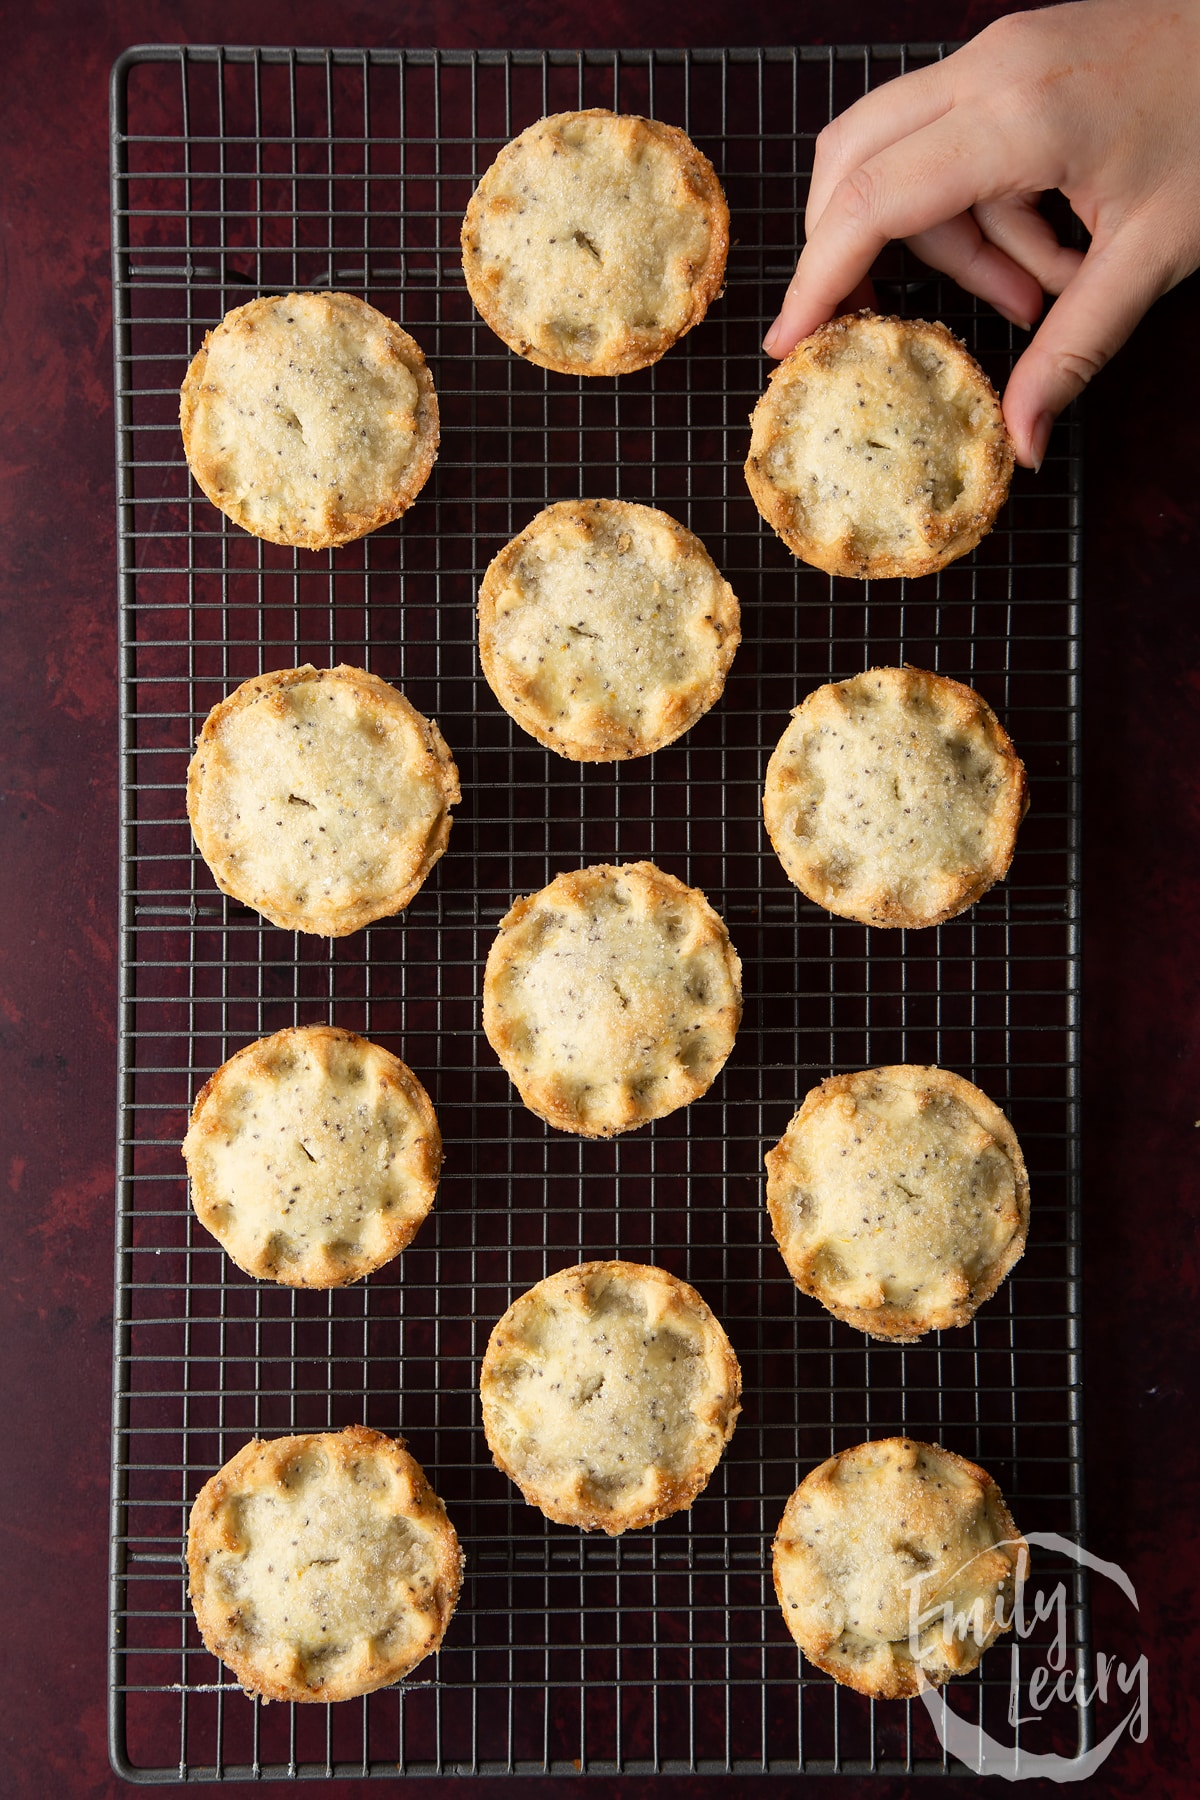 Freshly baked vegan mince pies on a wire cooling rack. A hand reaches for one.